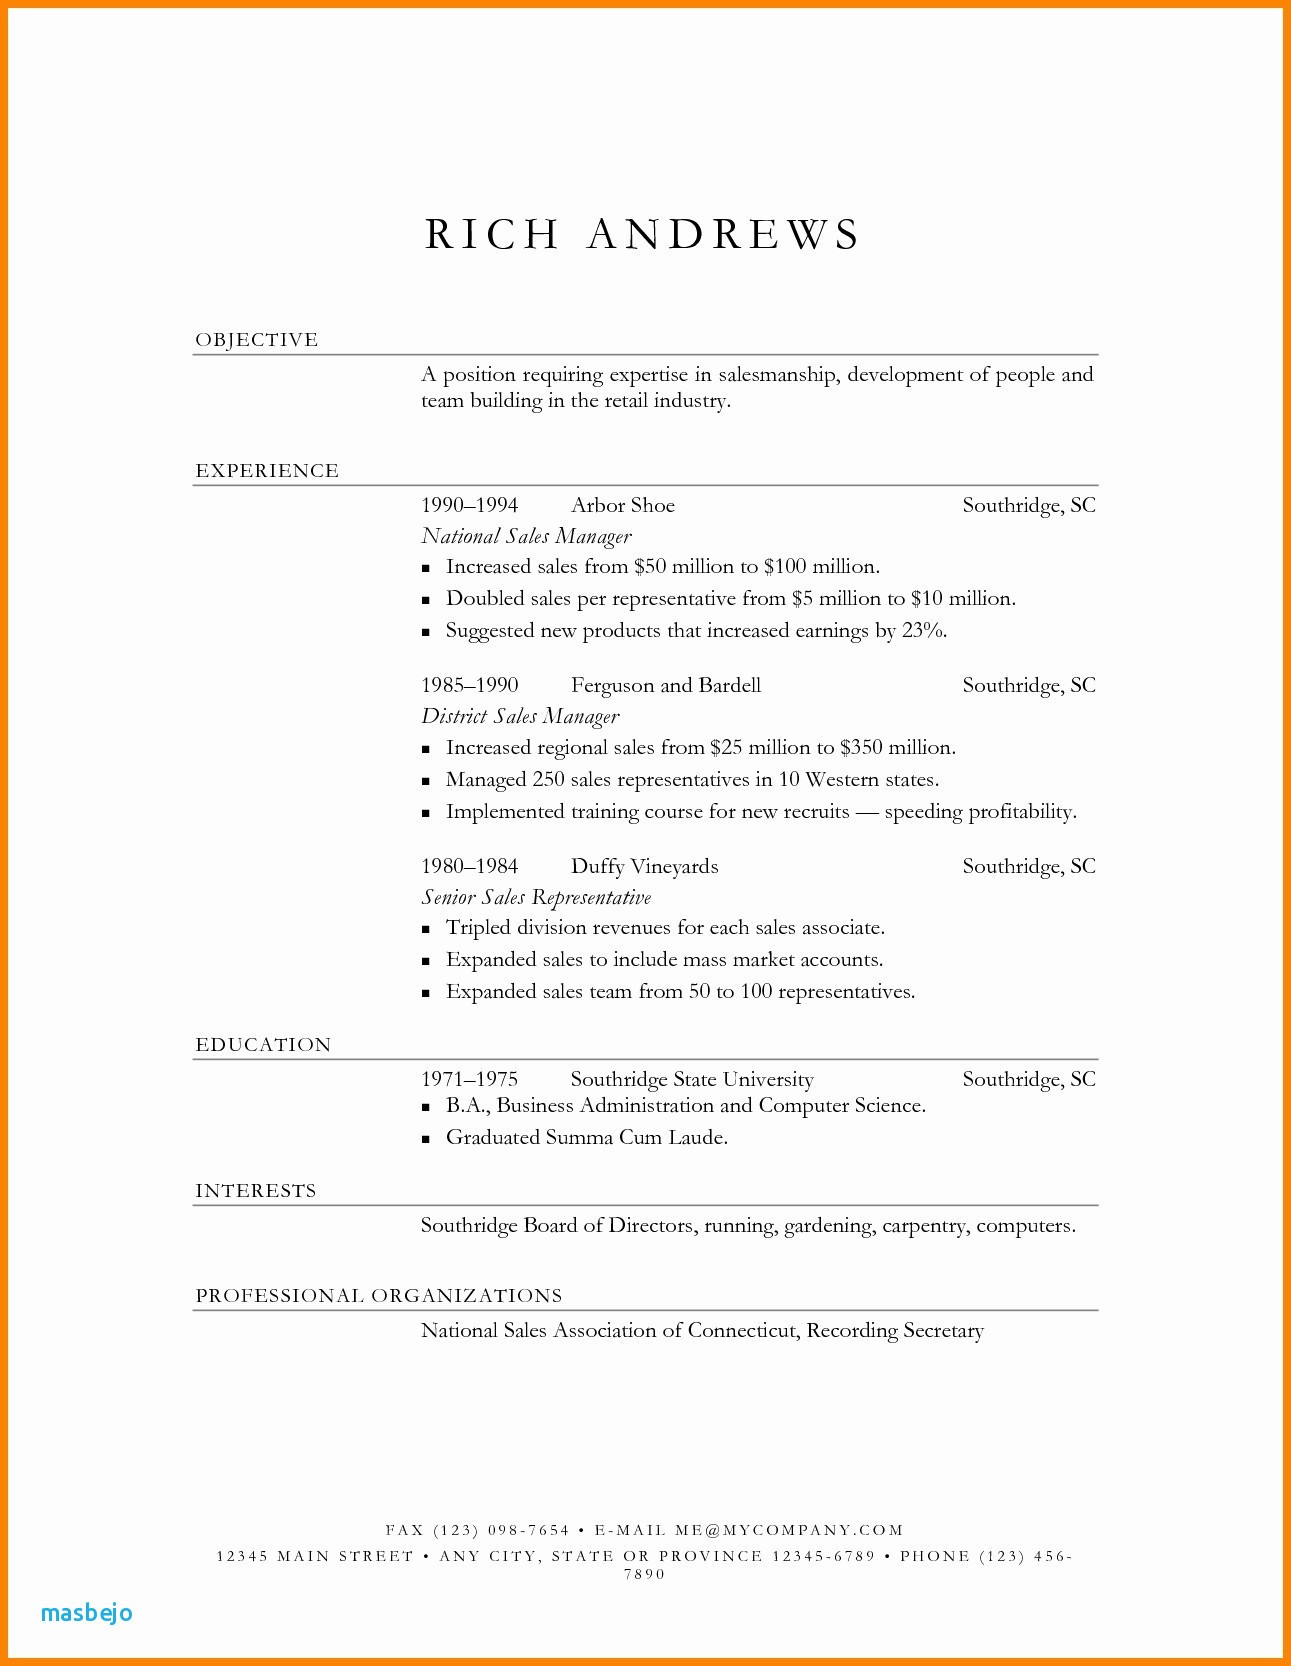 Resume Template Computer Science - Puter Science Resume Template Fresh Puter Science Resume Template